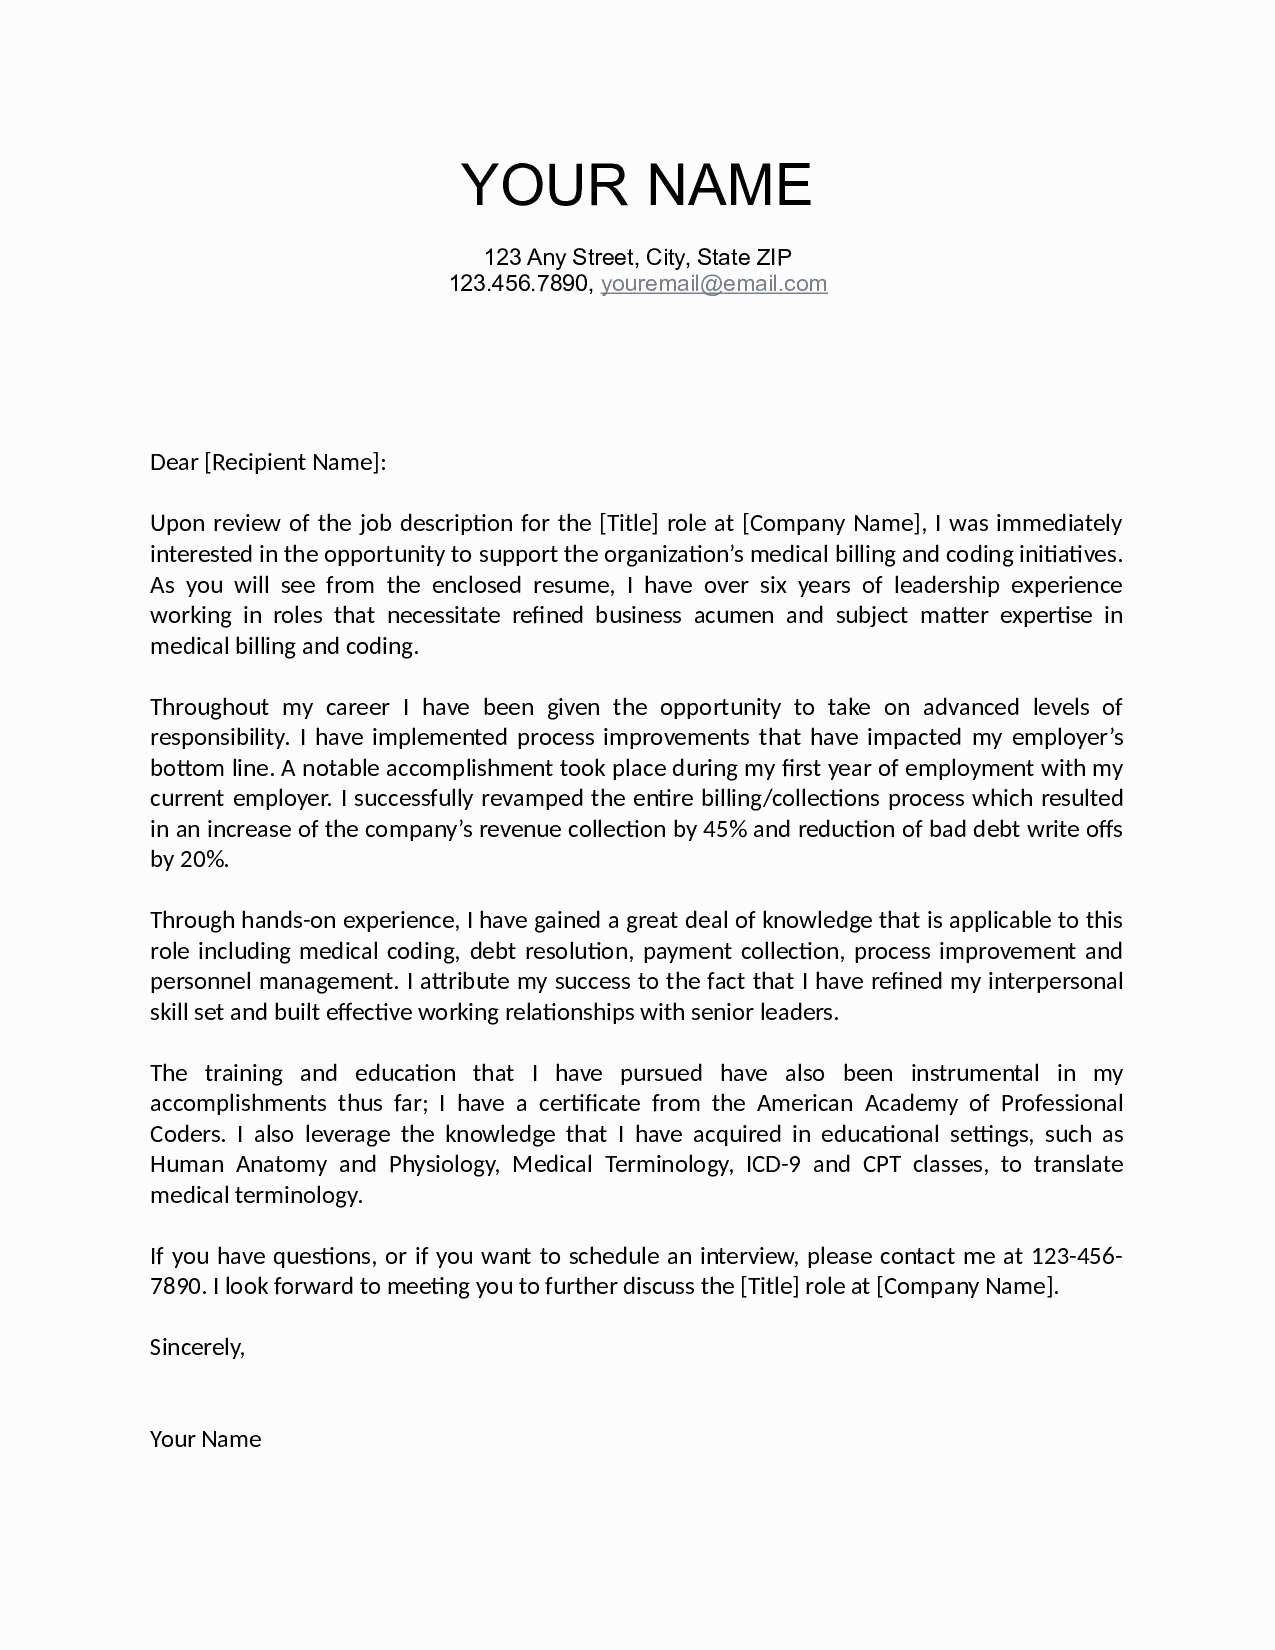 Simple Job Offer Letter Template - Simple format Job Fer Letter Refrence Job Fer Letter Template